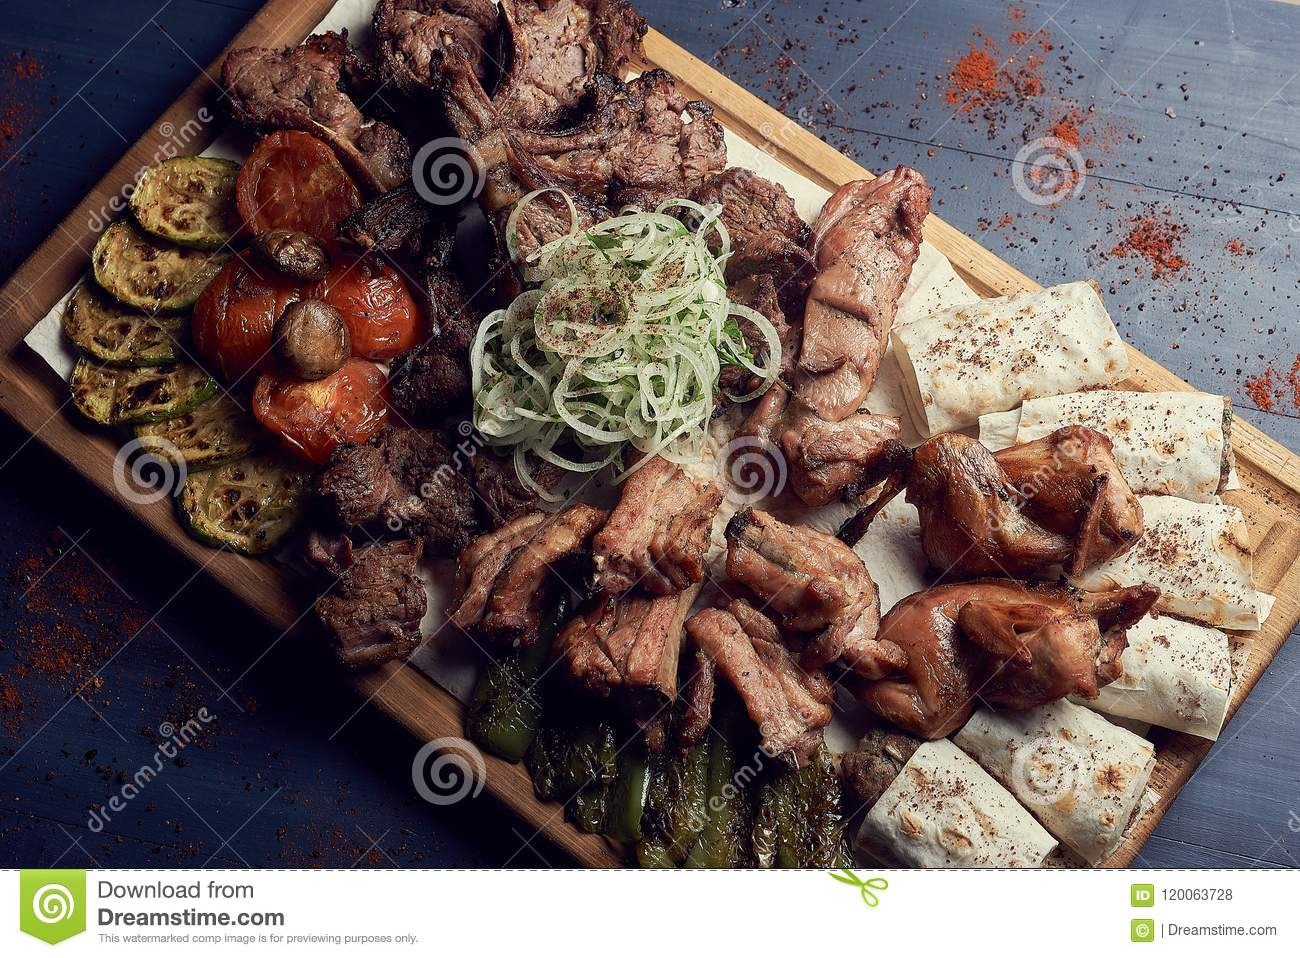 A big set of grilled meat with vegetables on big wooden plato or cutting board on gark wooden background. Tradicional